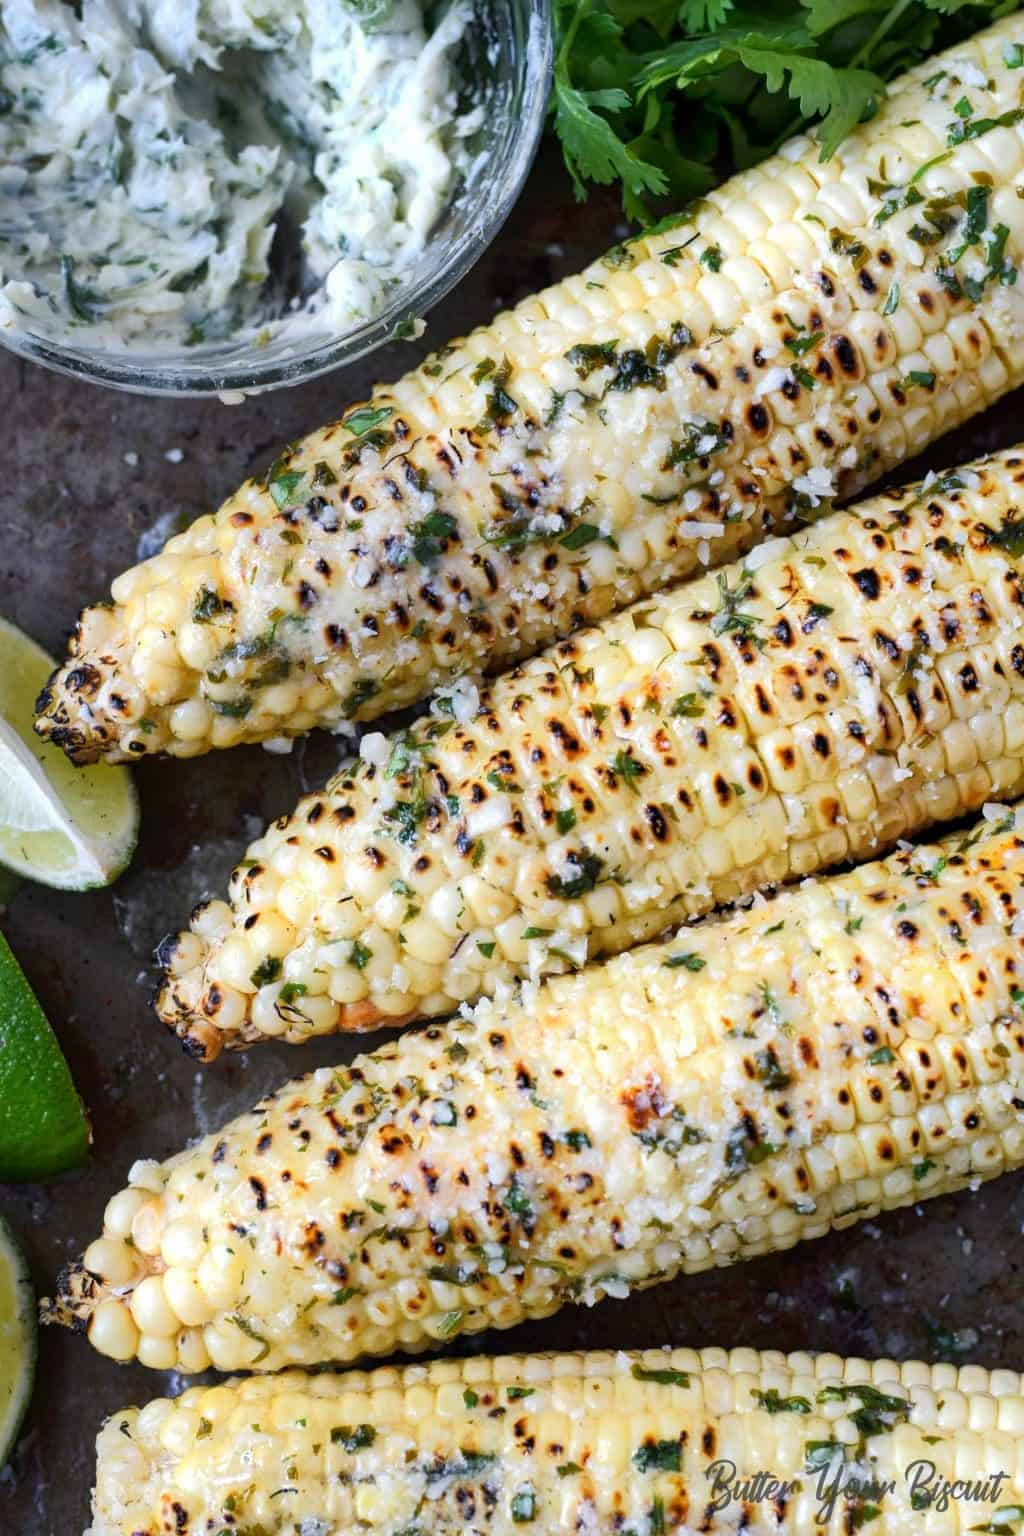 Four ears of grilled corn with melted butter on top.